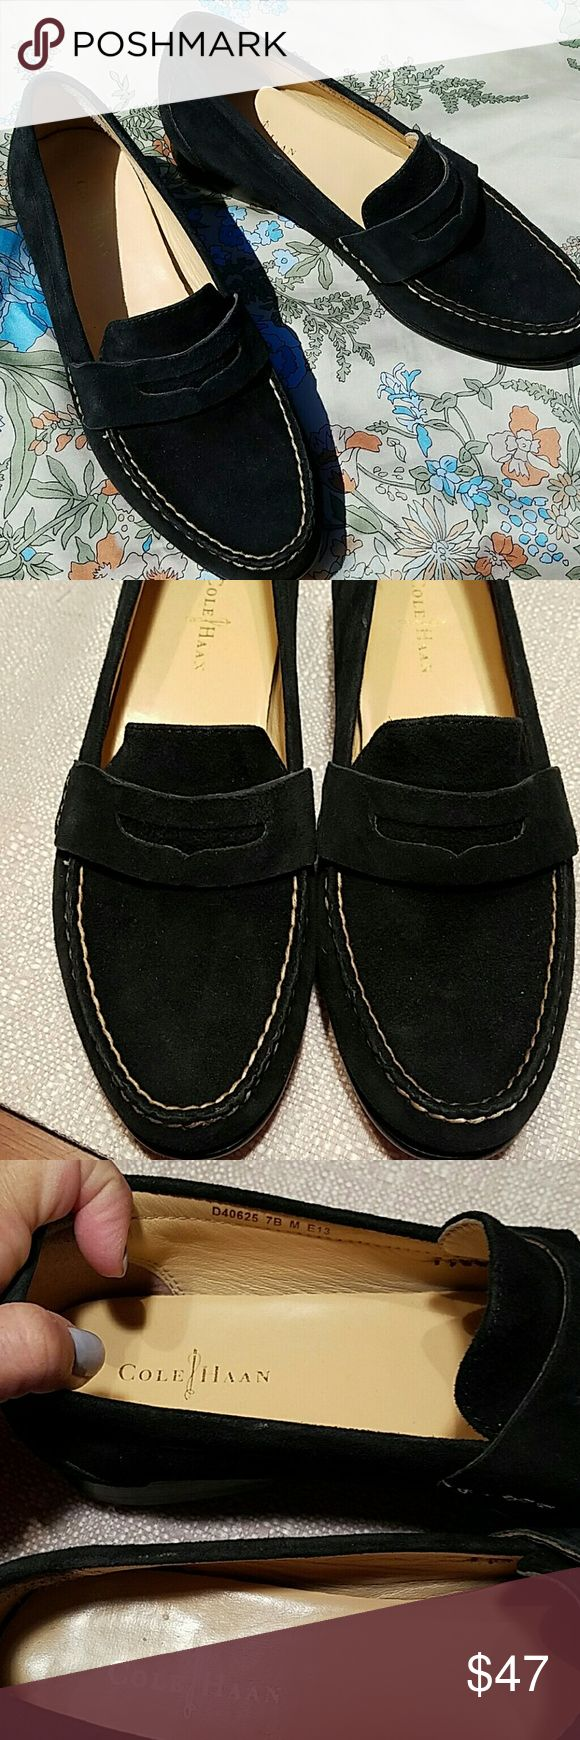 Cole Haan Nike Air Suede Loafers Gorgeous pair of penny loafers from Cole Haan Nike Air collection NWOT, Never worn a tad too big for me. Black genuine suede uppers with taupe stitching and genuine leather soles, a well made, timelessly classic shoe. Shoes Flats & Loafers